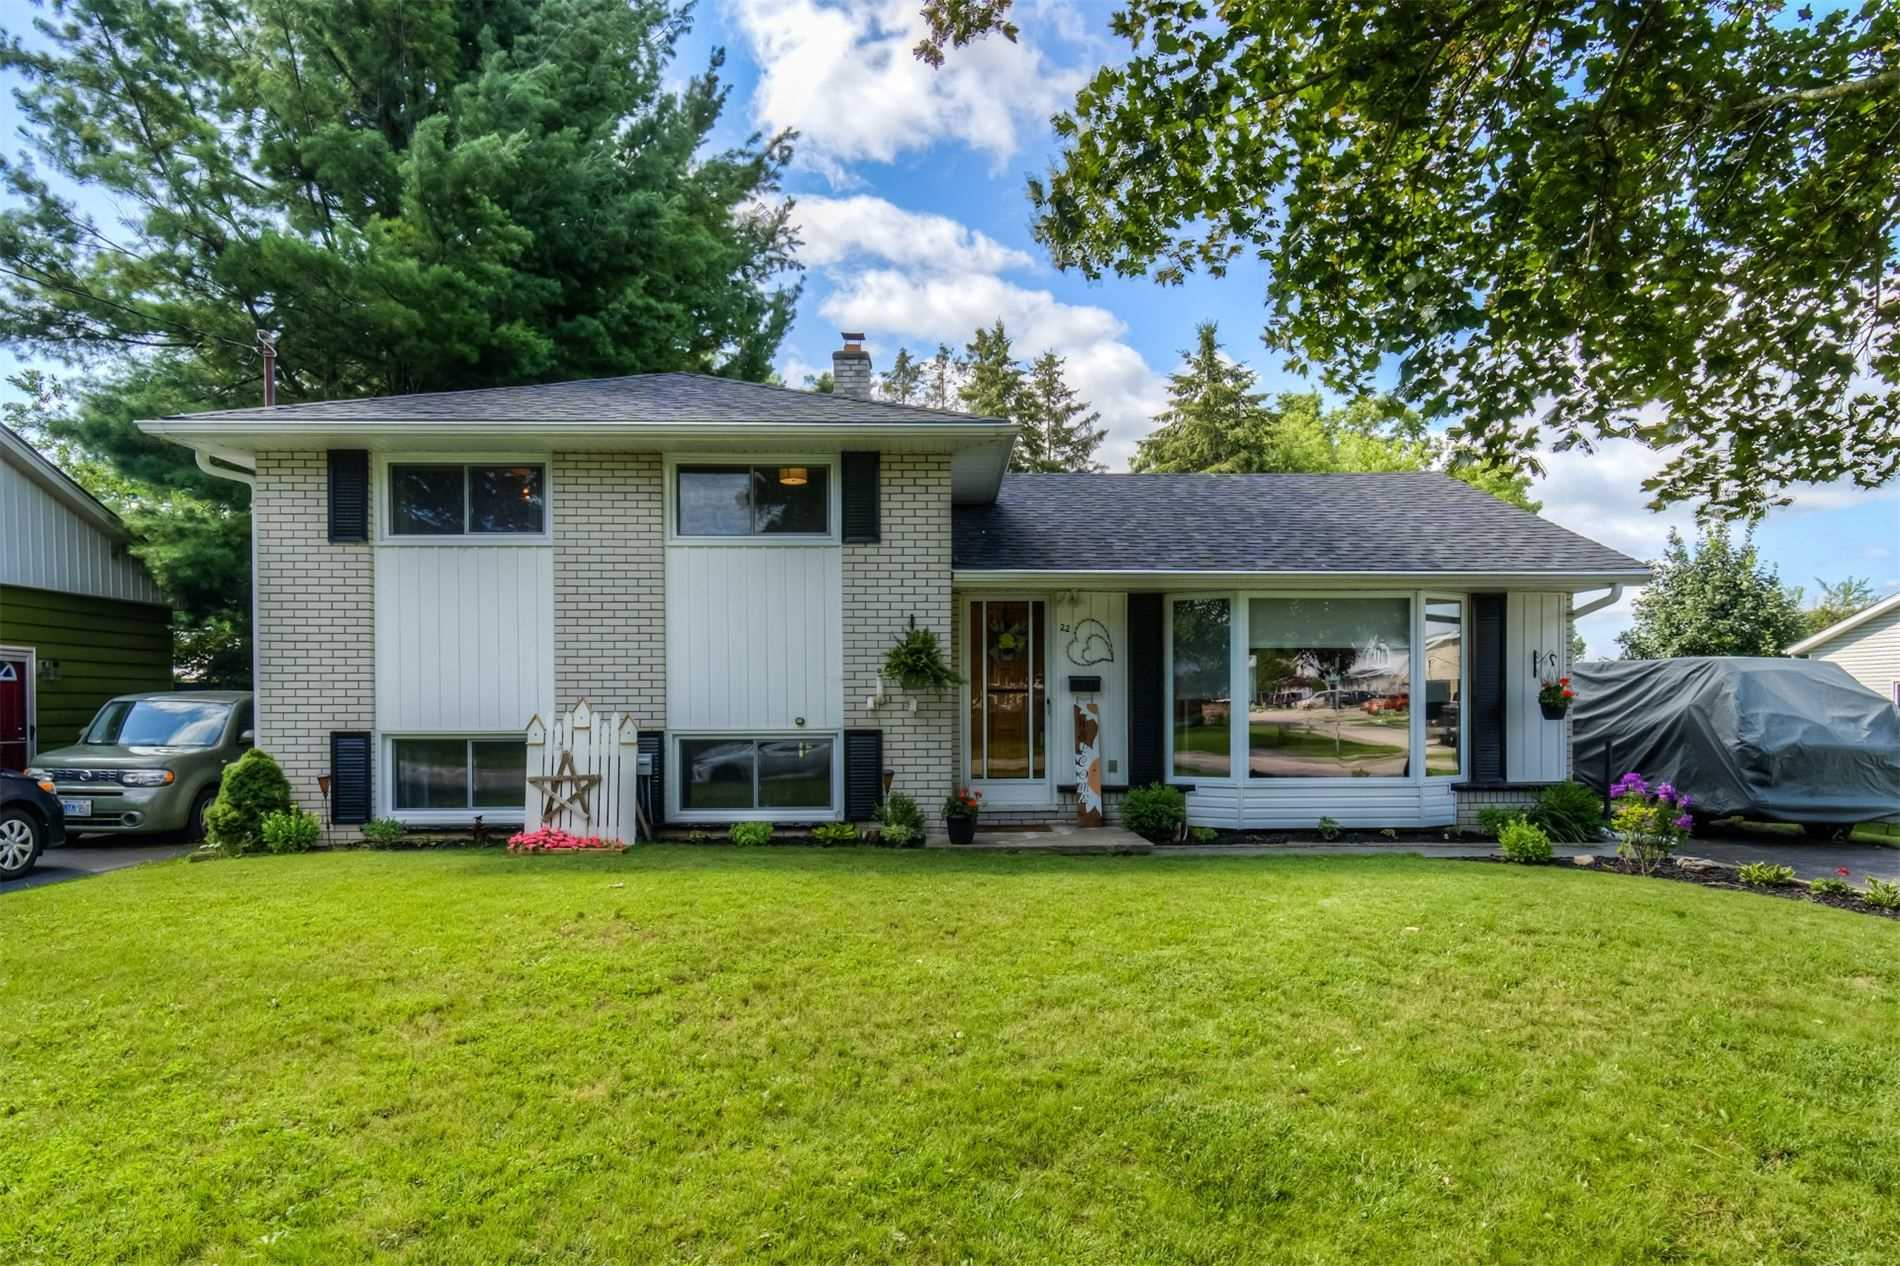 Detached house For Sale In Brant